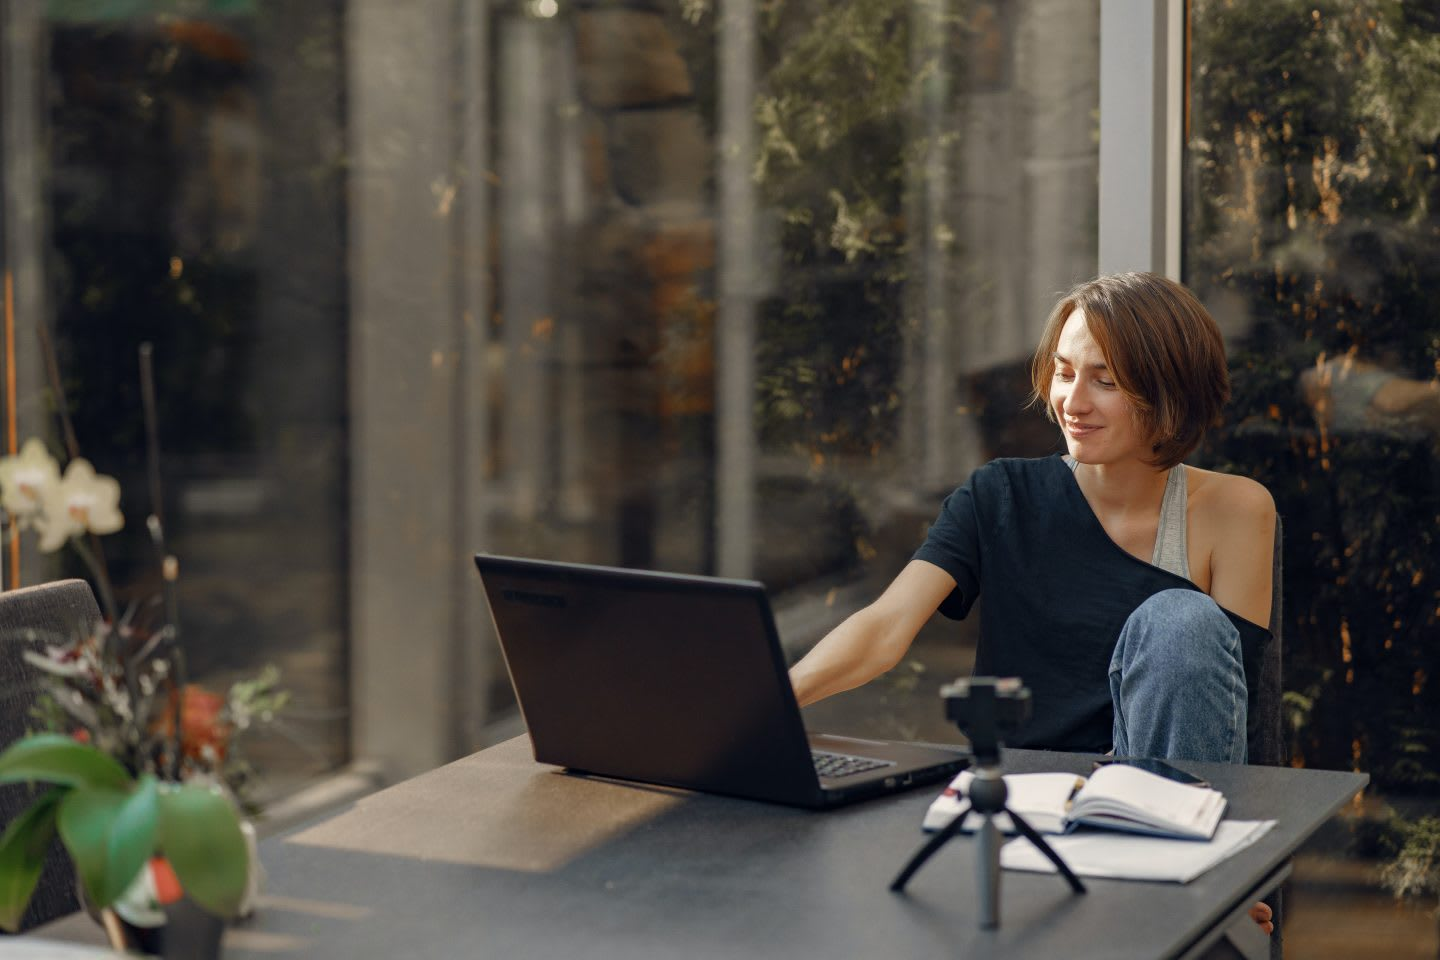 Woman sitting on a desk next to a window working on a laptop. Virtual meetings, work remotely, home office